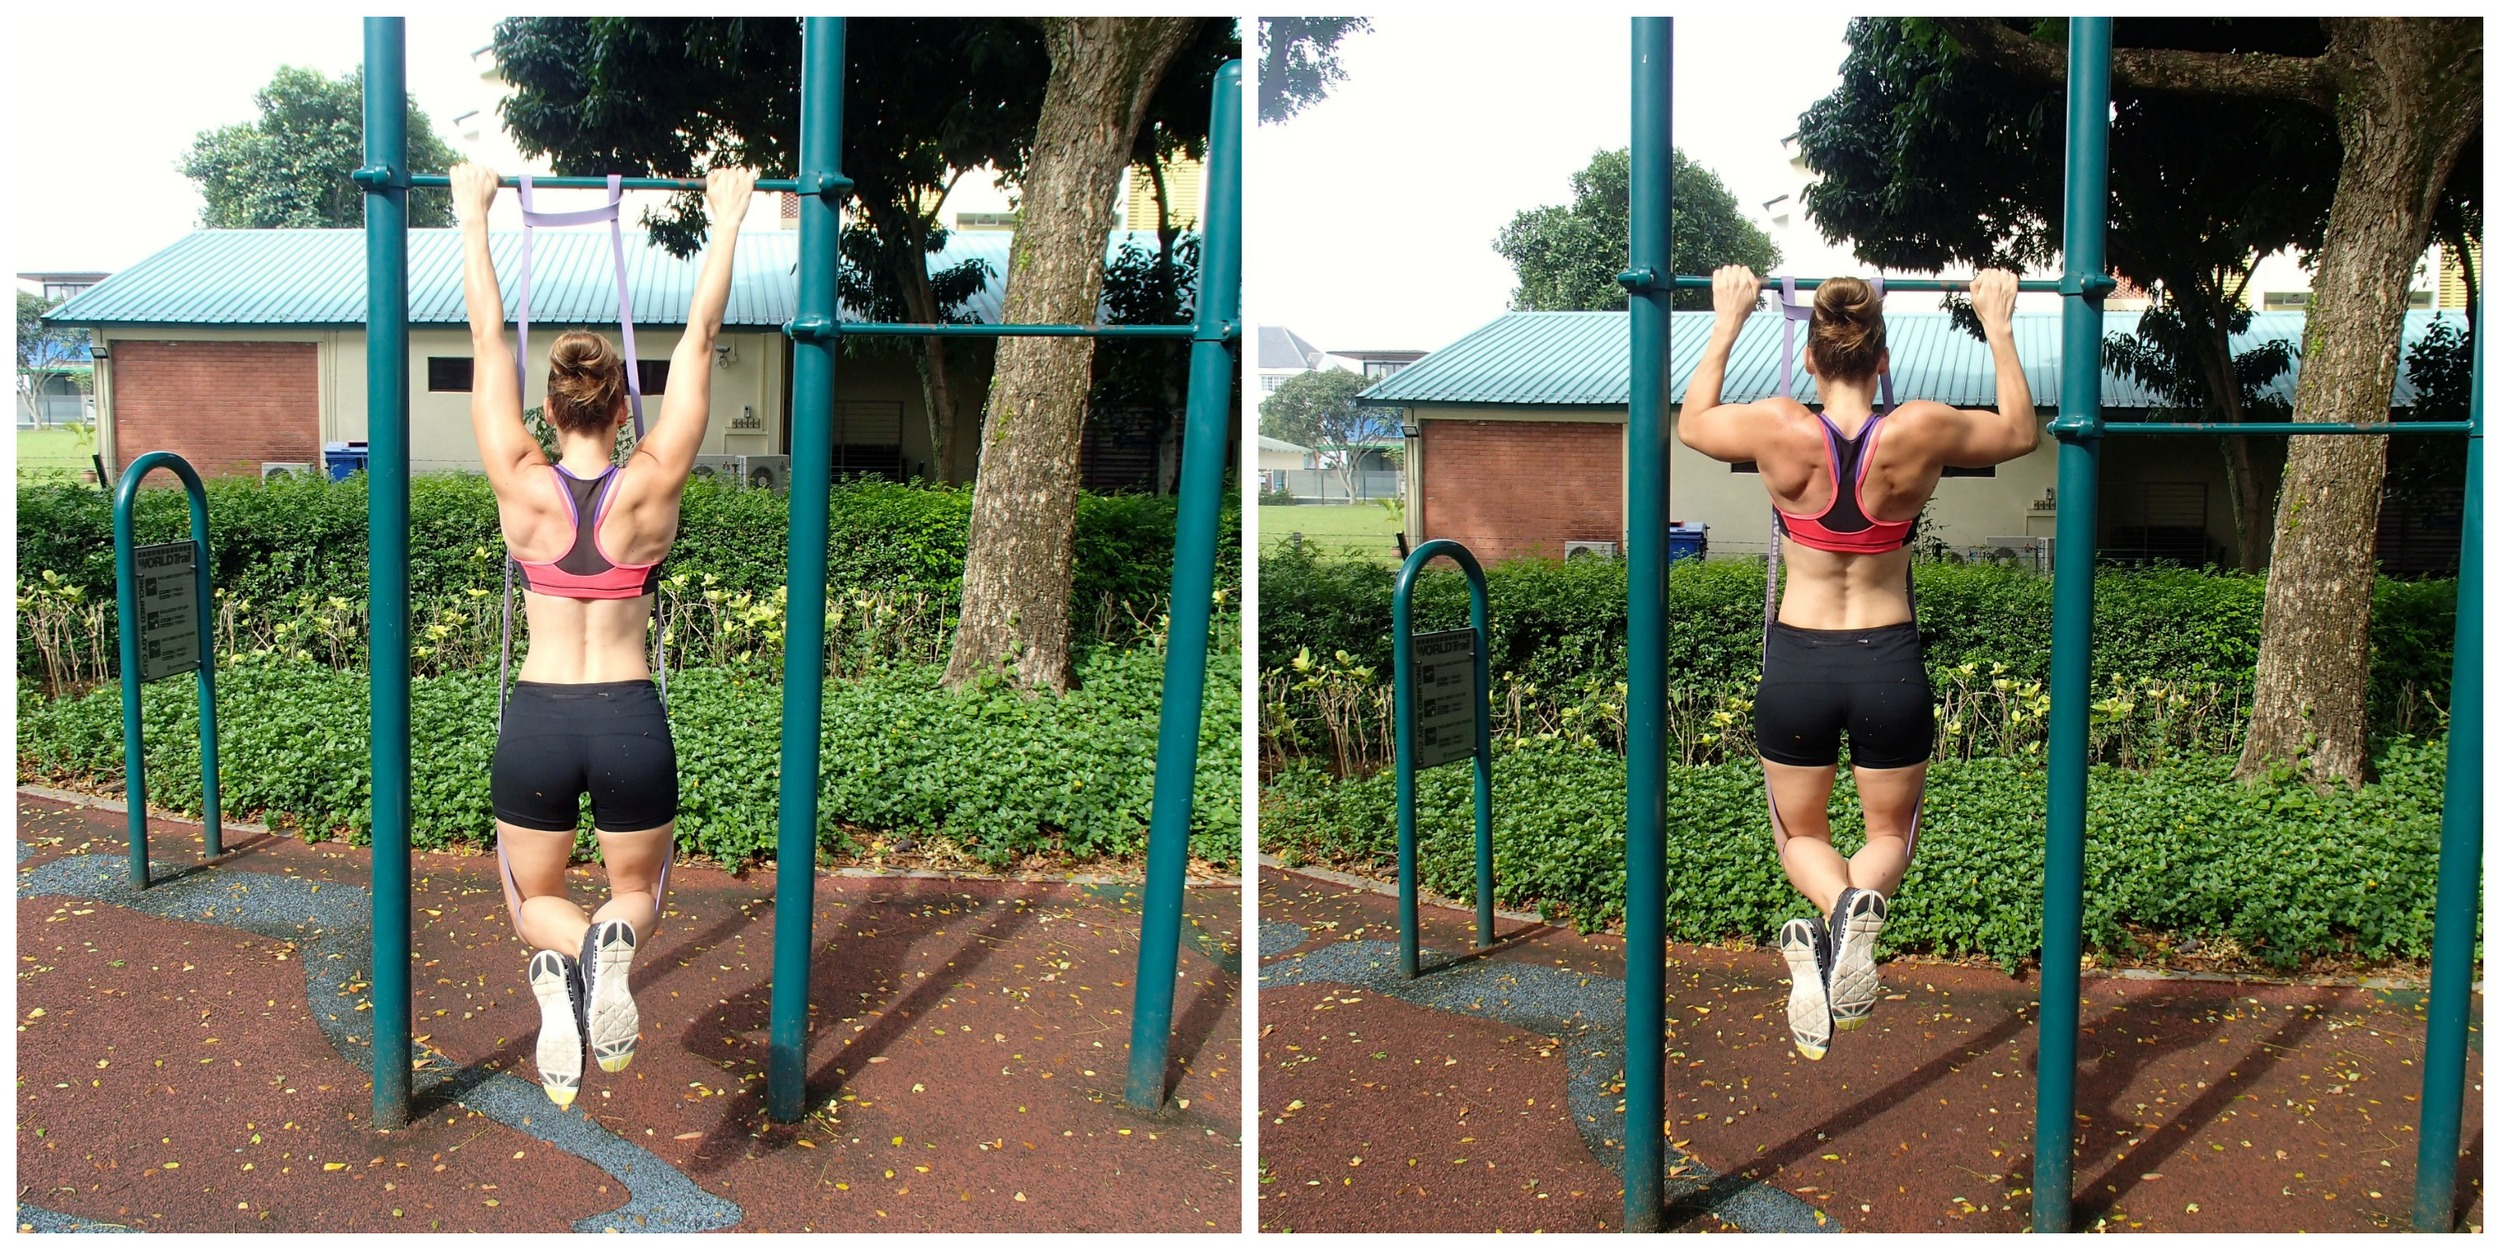 Use a rubber band specifically made for pull-up training to help you advance toward the big goal... the UNASSISTED REAL DEAL PULL-UP!!!